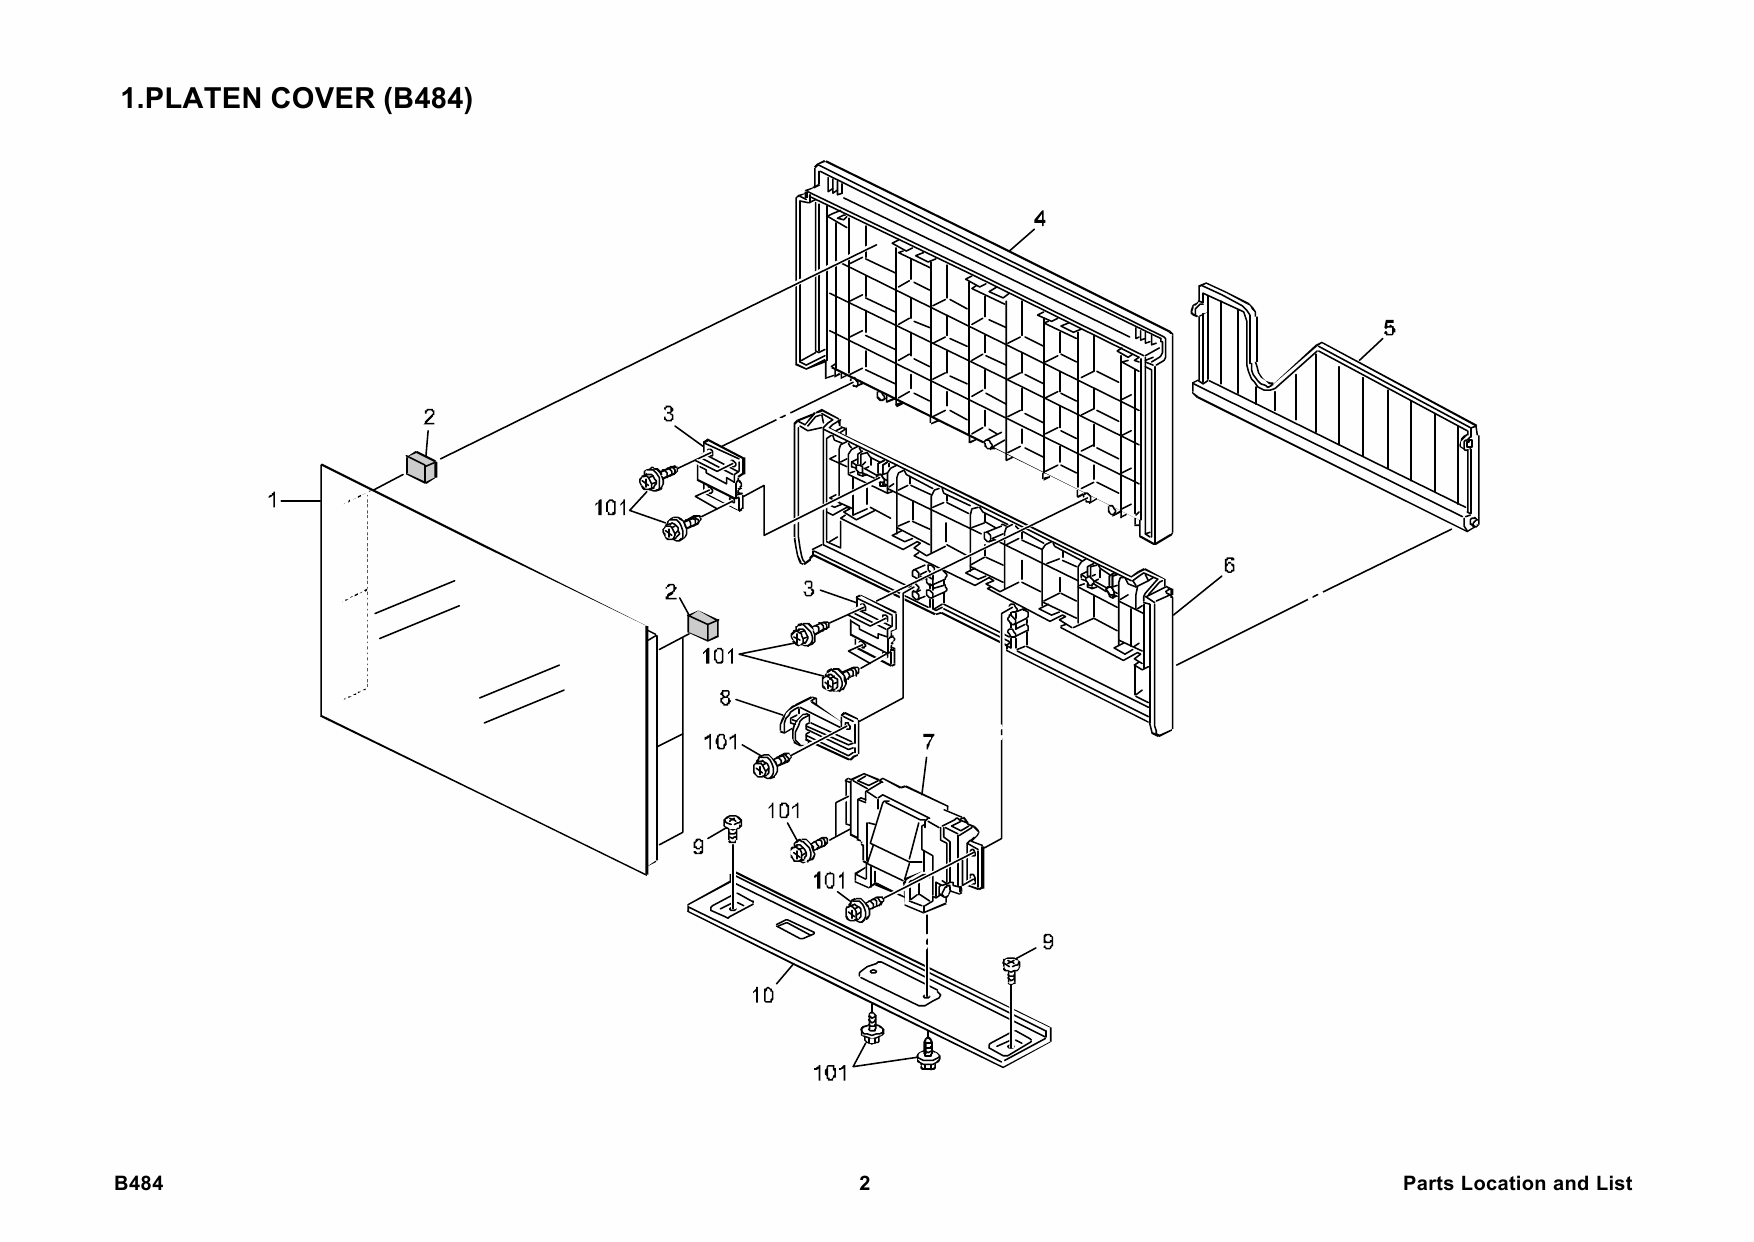 RICOH Options B484 PLATEN-COVER-TYPE-120 Parts Catalog PDF